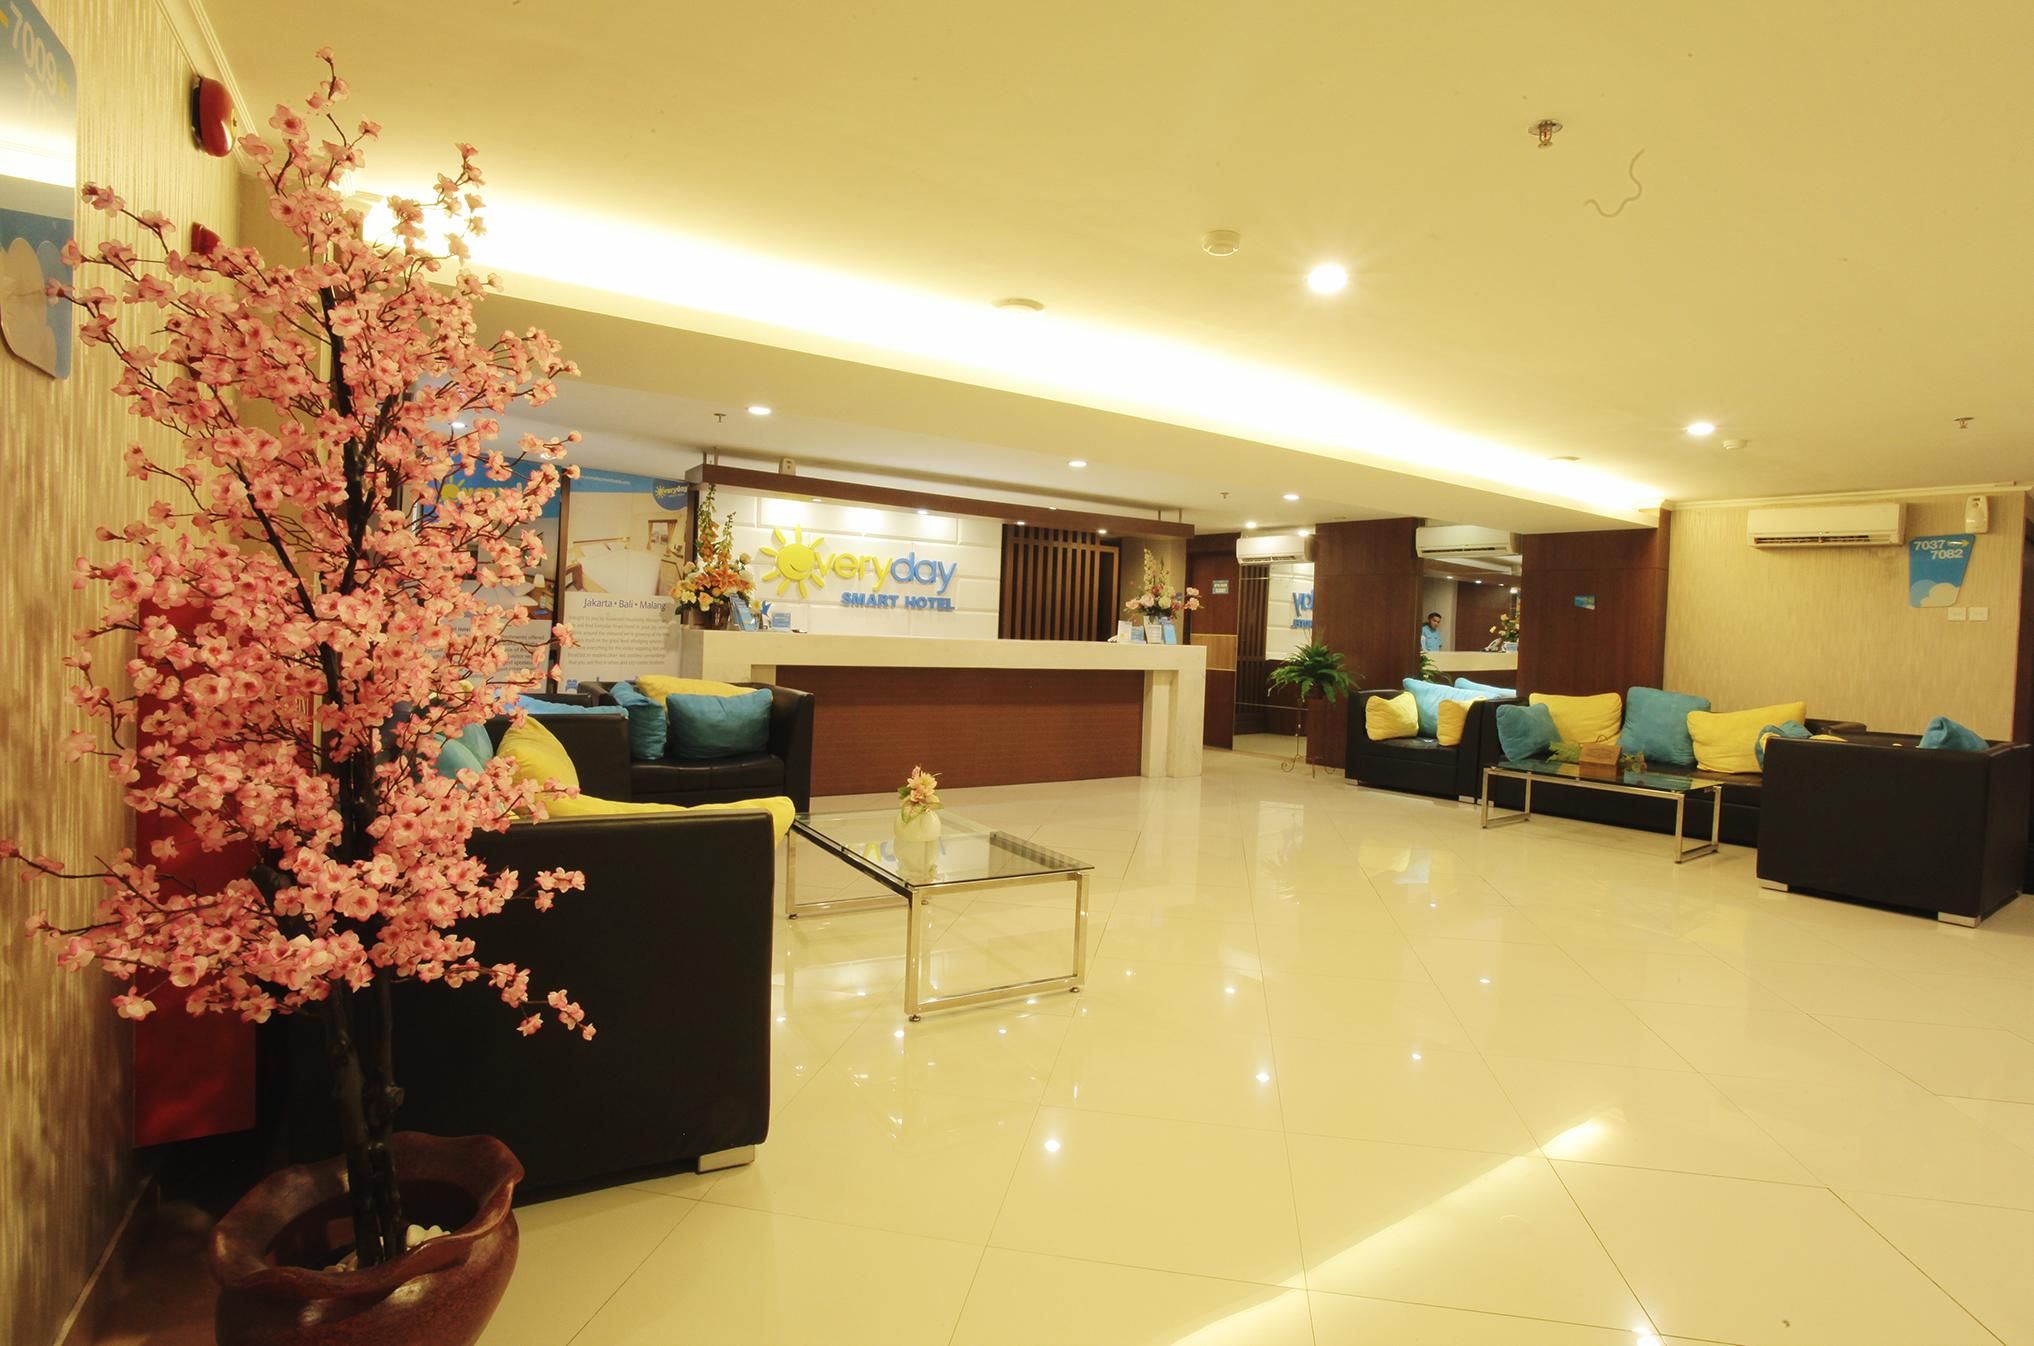 Everyday Smart Hotel Malang 2 Star In Indonesia Voucher Sahid Montana Dua Previous Next